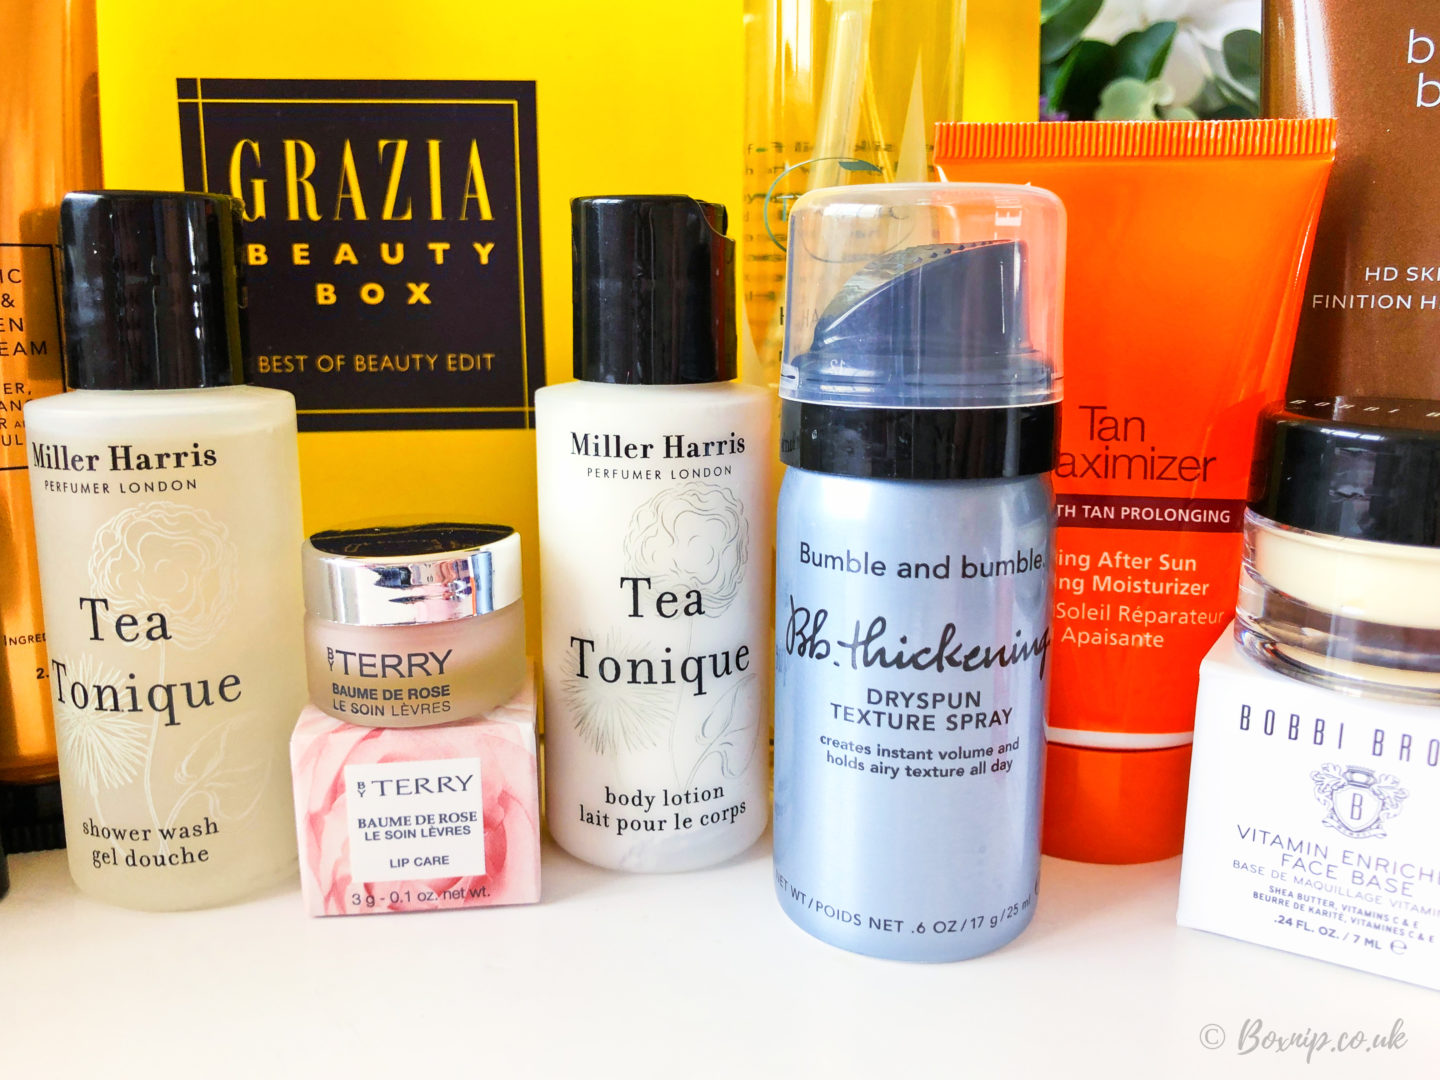 Grazia Beauty Best of Beauty Box